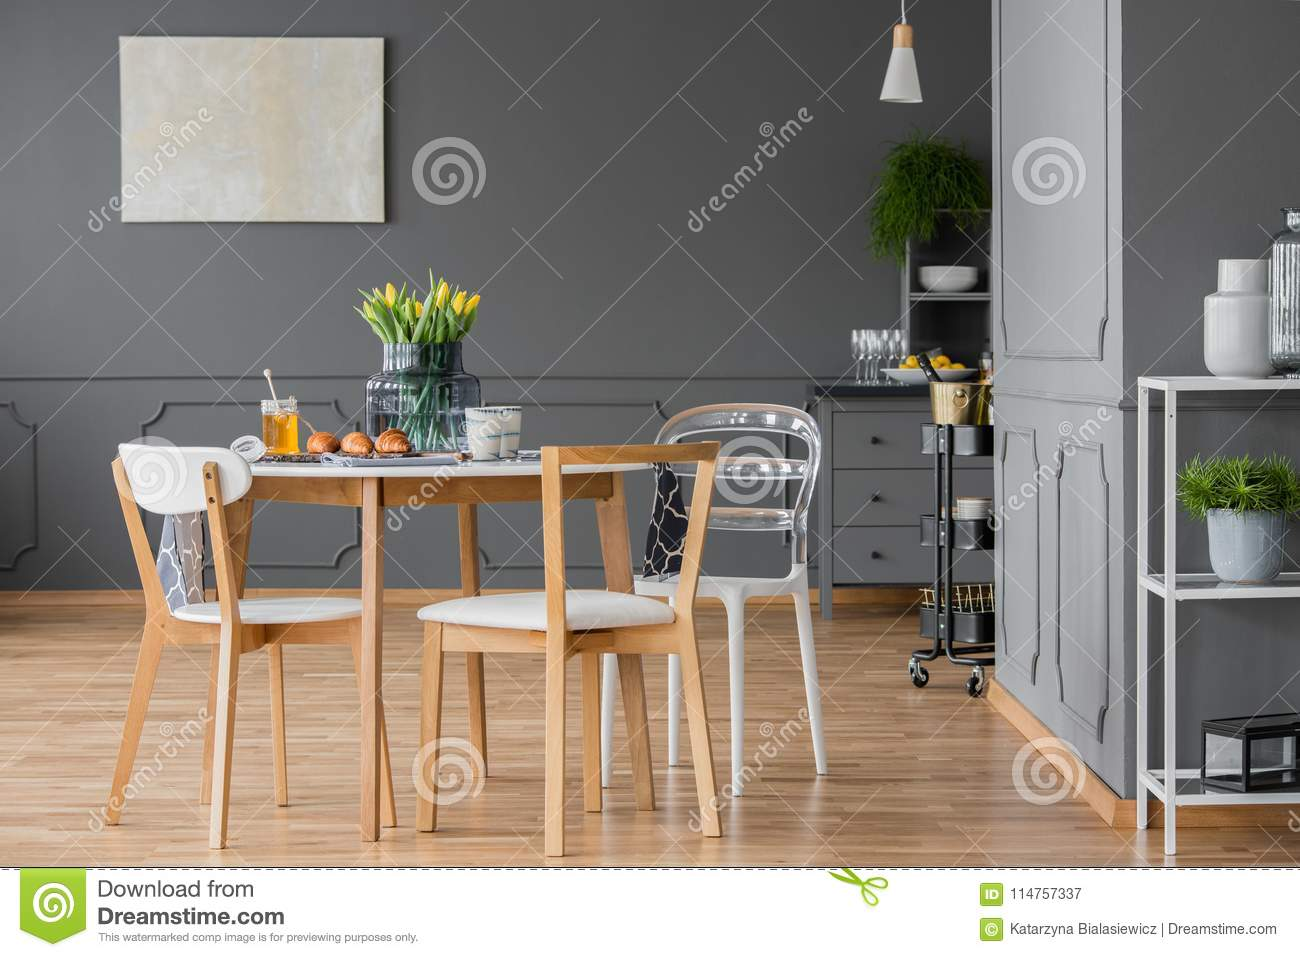 Minimalist wooden set of dining furniture in the middle of a designer open space loft interior with simple decor and elegant dark gray walls